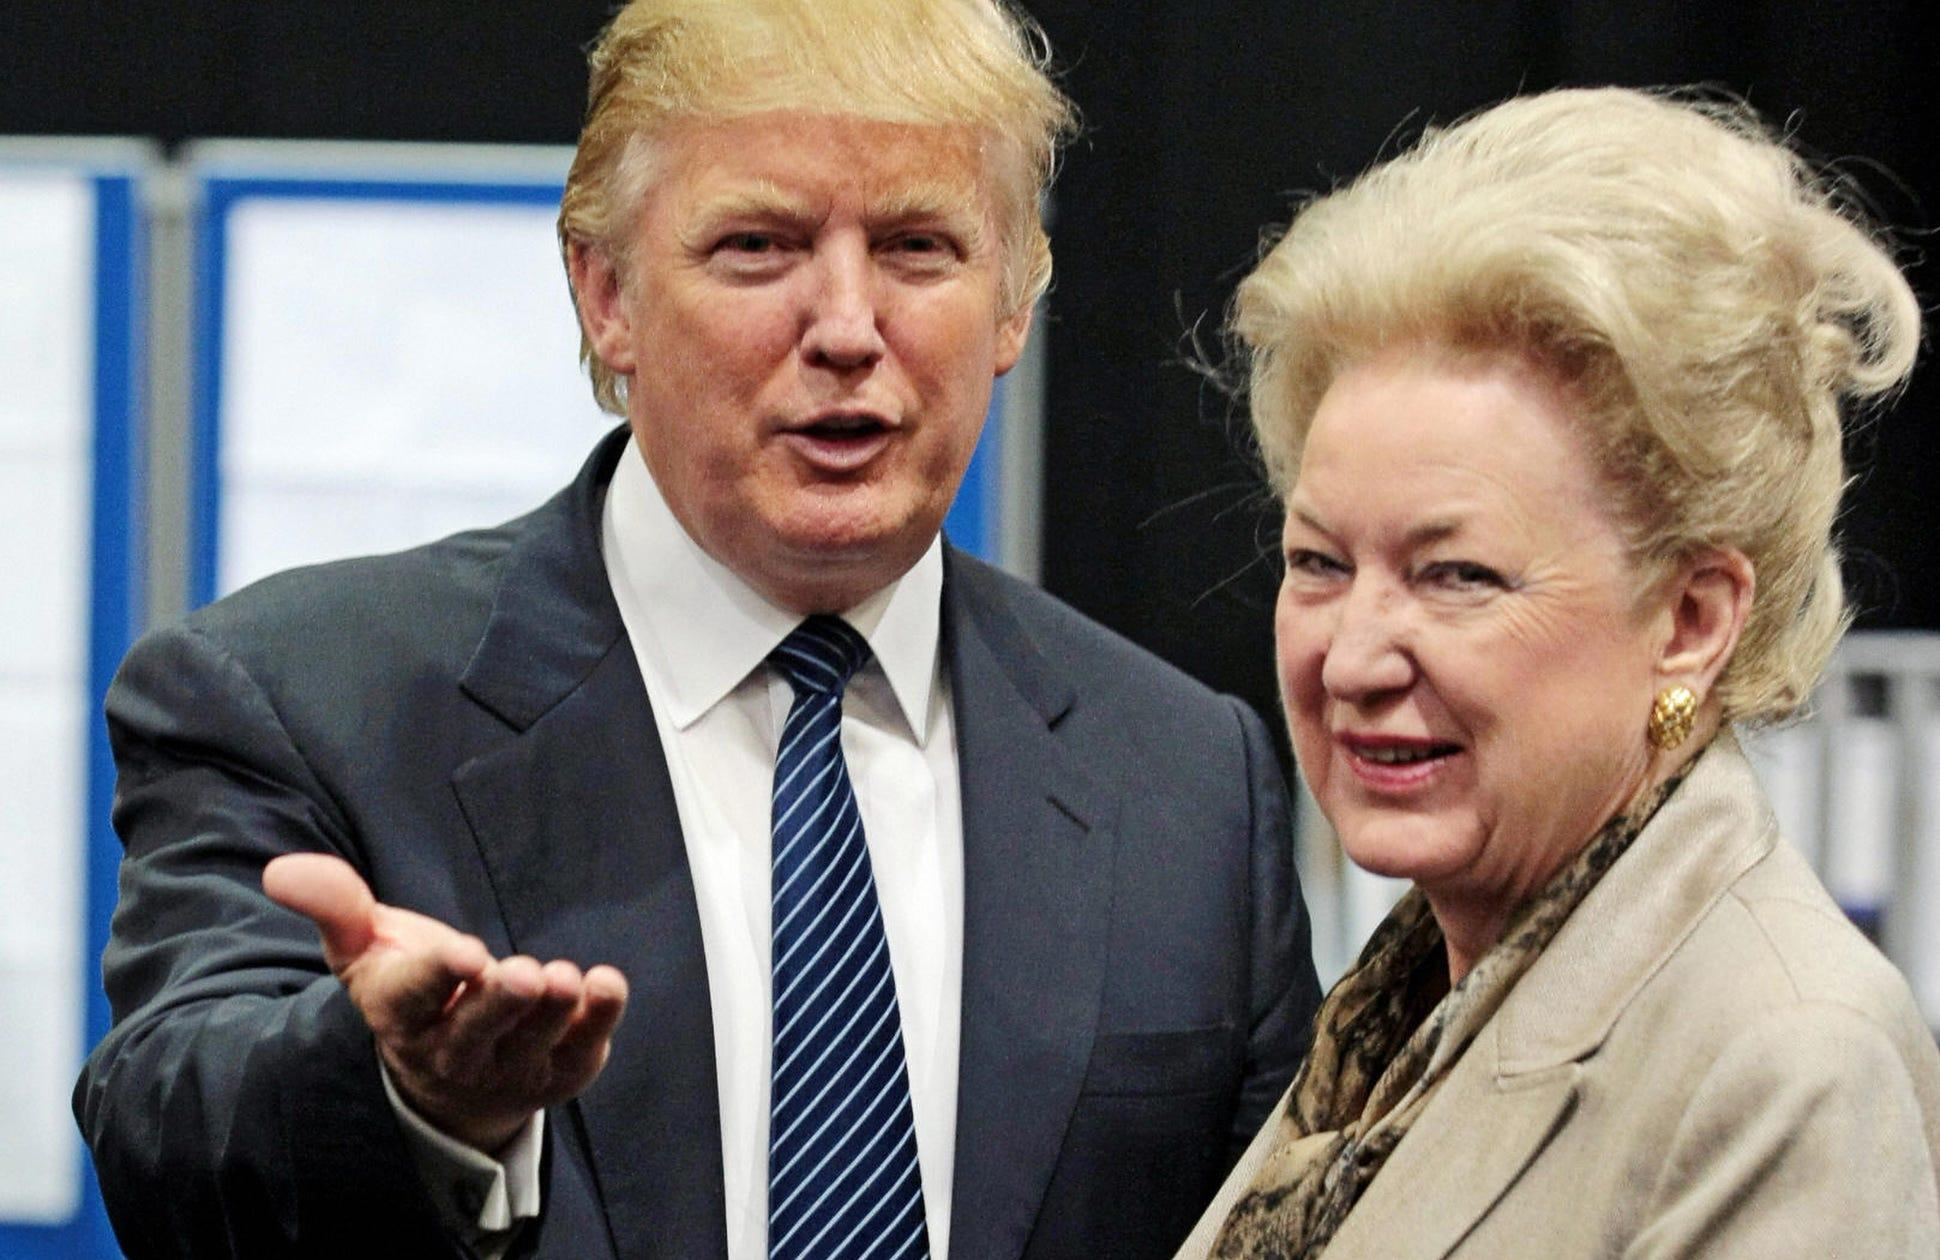 'He has no principles. None': Maryanne Trump Barry tears into her brother in secretly taped audio